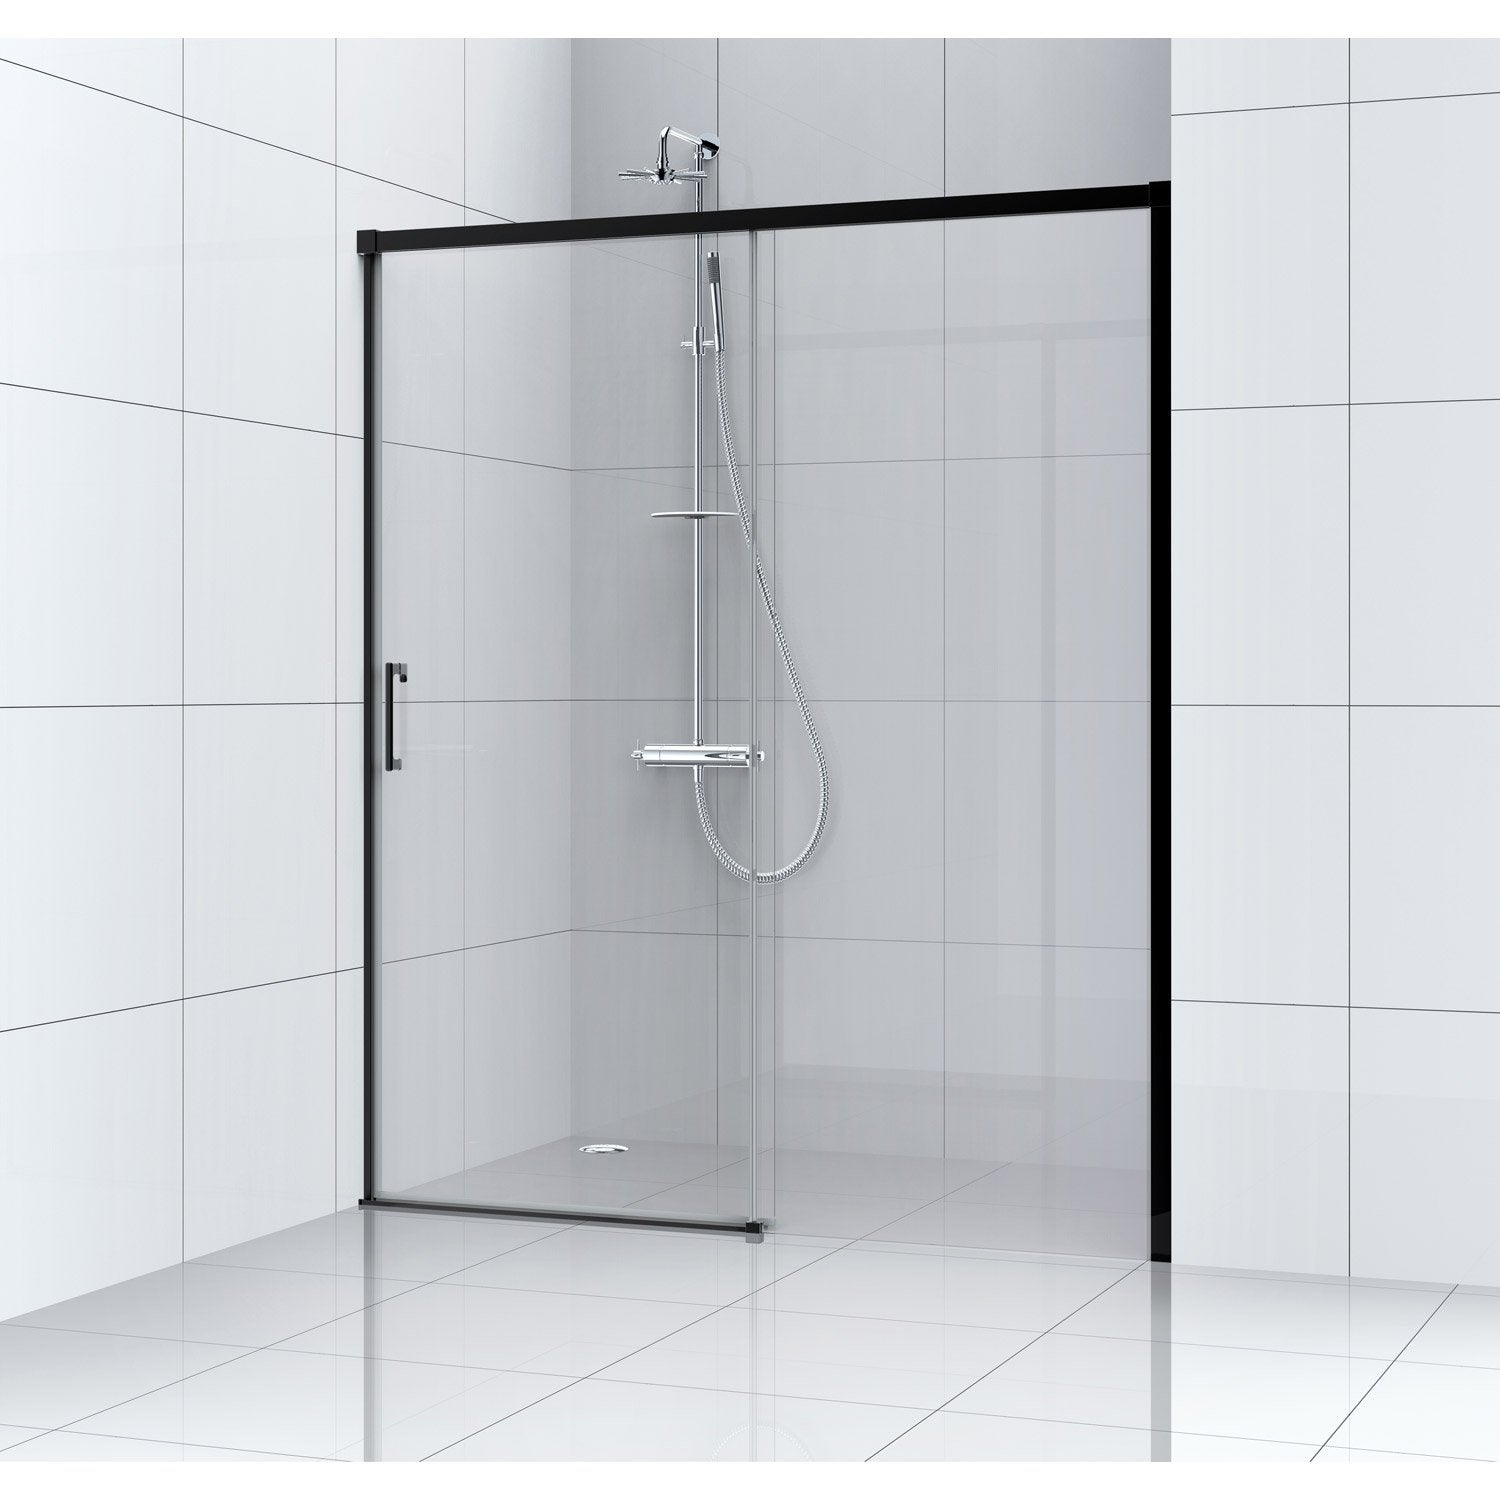 Porte de douche coulissante l 100 cm verre transparent for Porte en verre leroy merlin